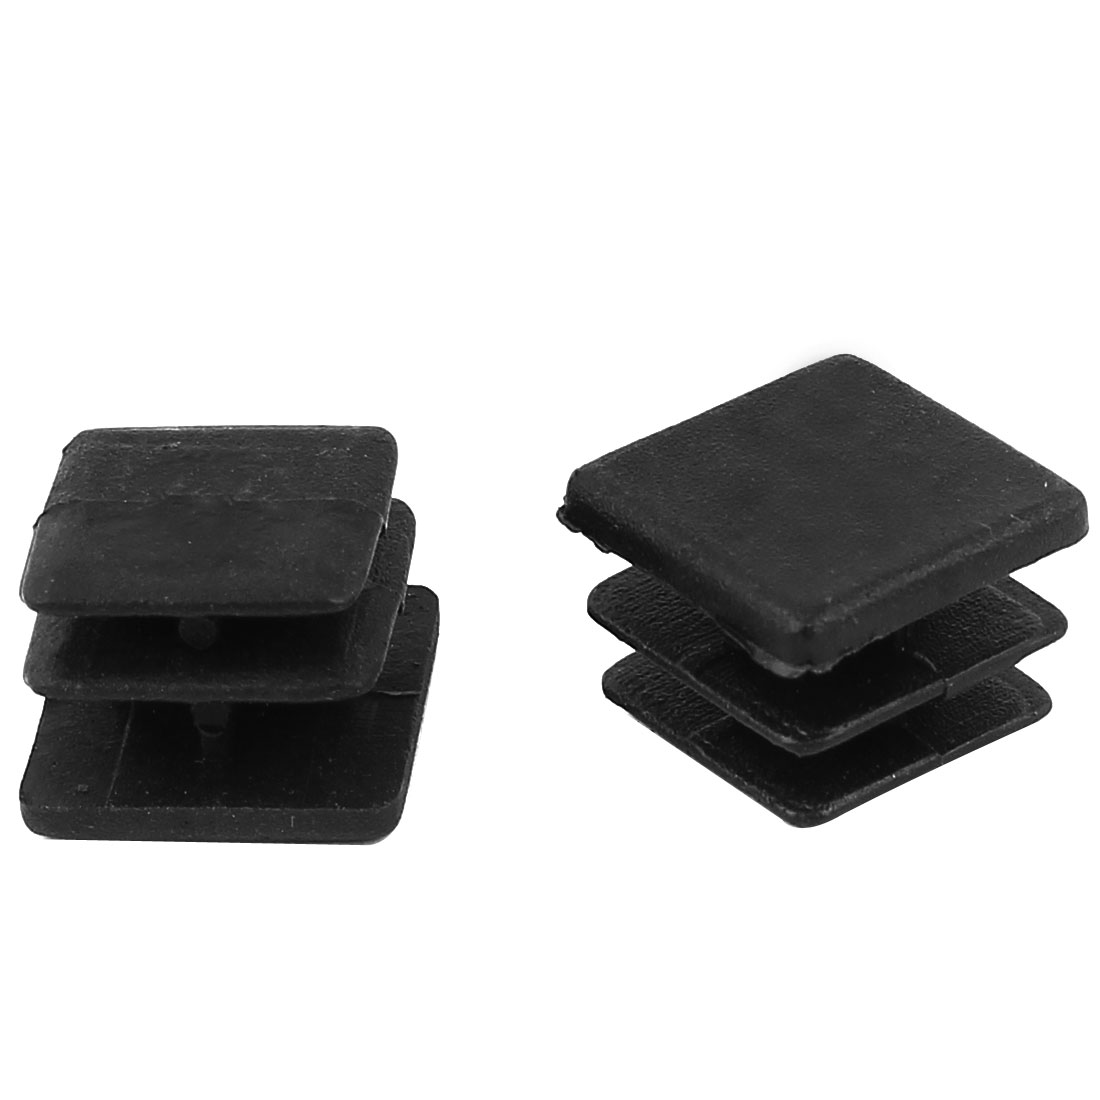 2 Pieces Black Plastic Square Blanking End Caps Tubing Tube Inserts 15mm x 15mm